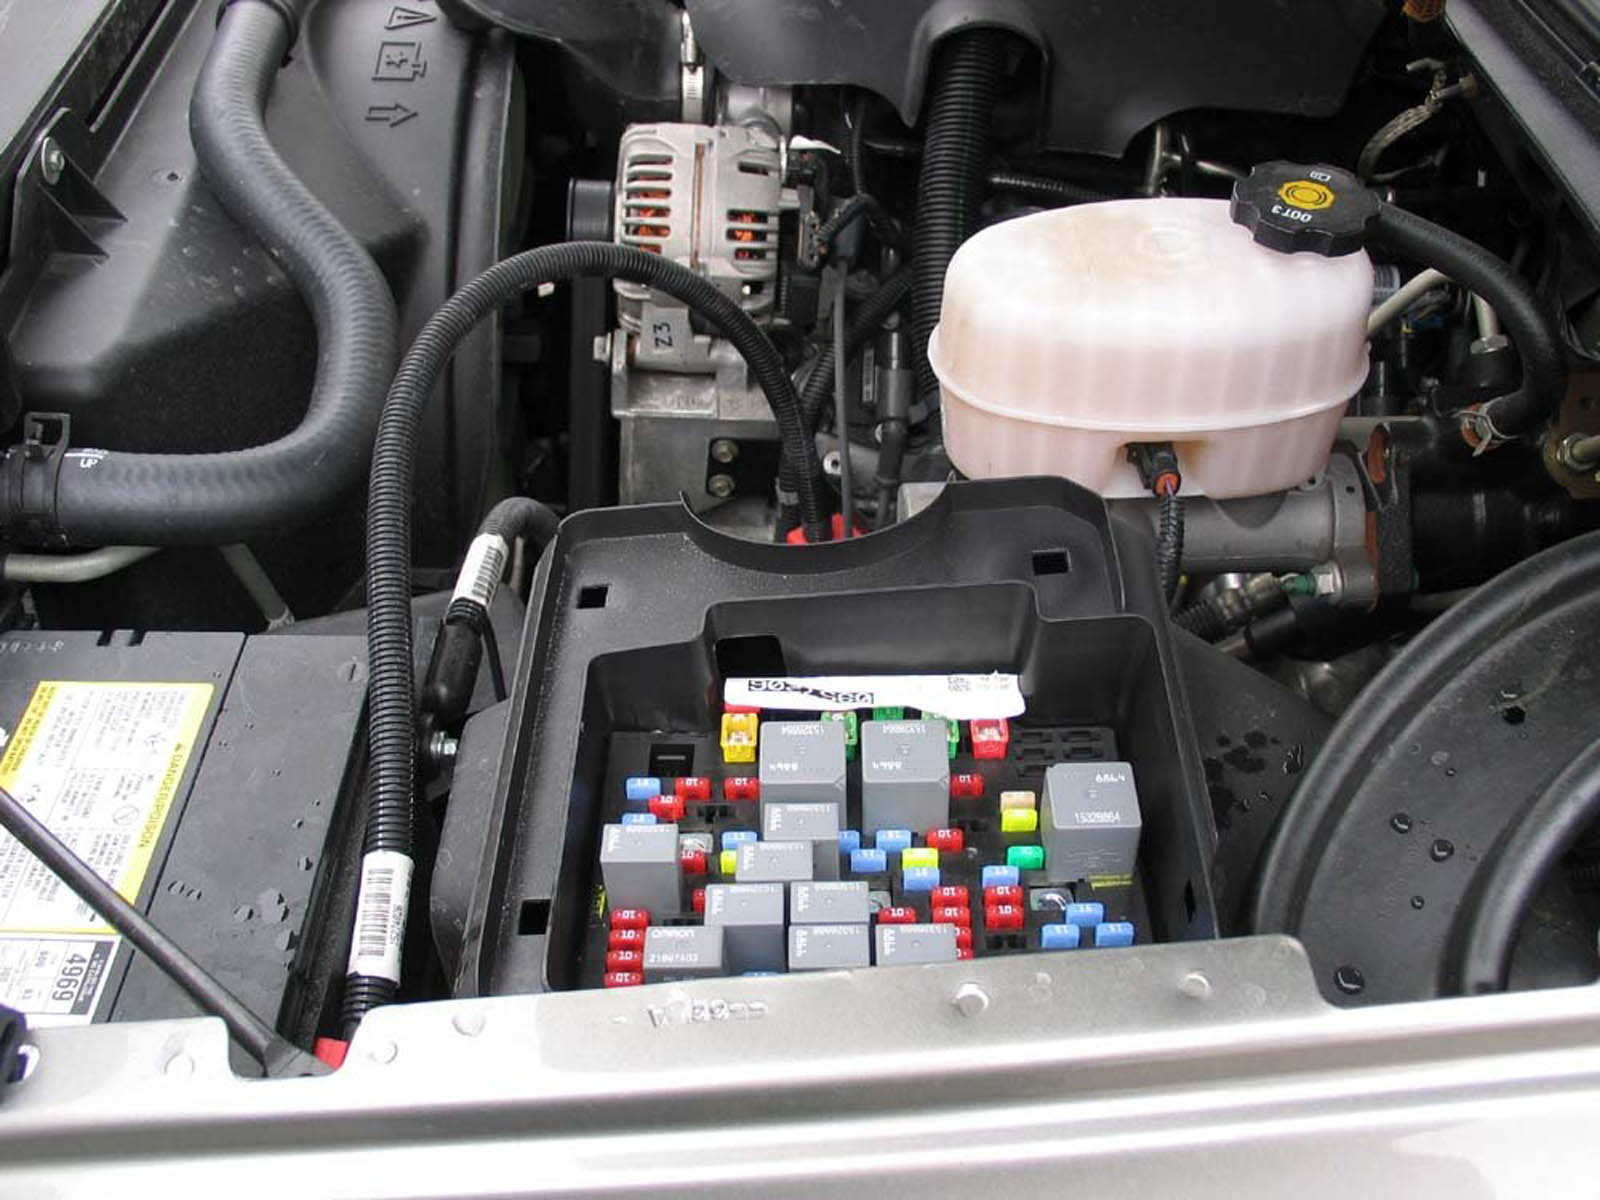 MMMay 27 Fuse Box 04 69845 chevrolet silverado gmt800 1999 2006 fuse box diagram chevroletforum 1999 chevy silverado 2500 fuse box diagram at couponss.co